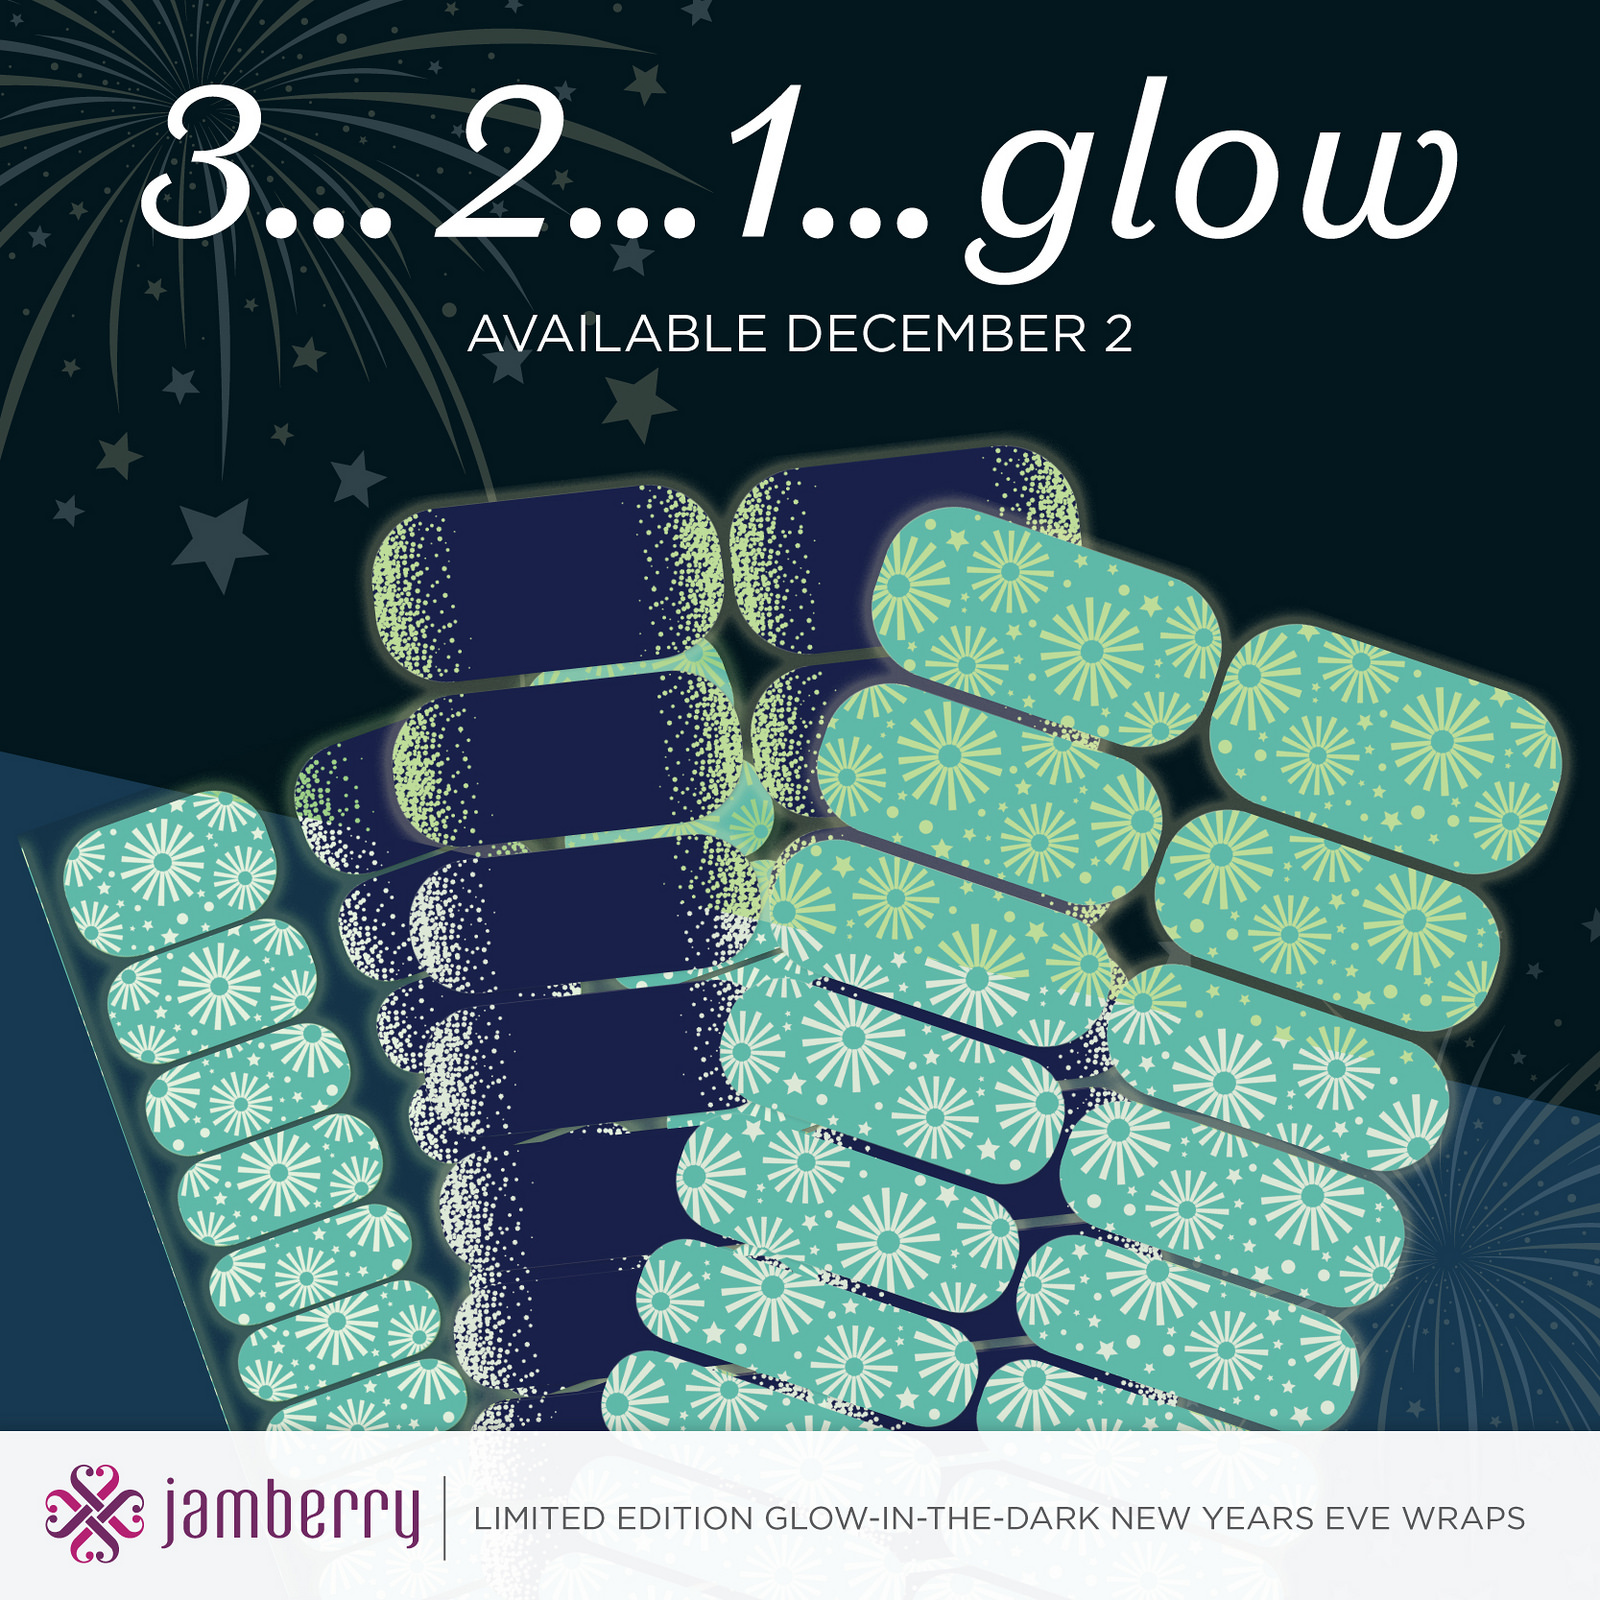 2 New Glow In The Dark Jamberry Wraps